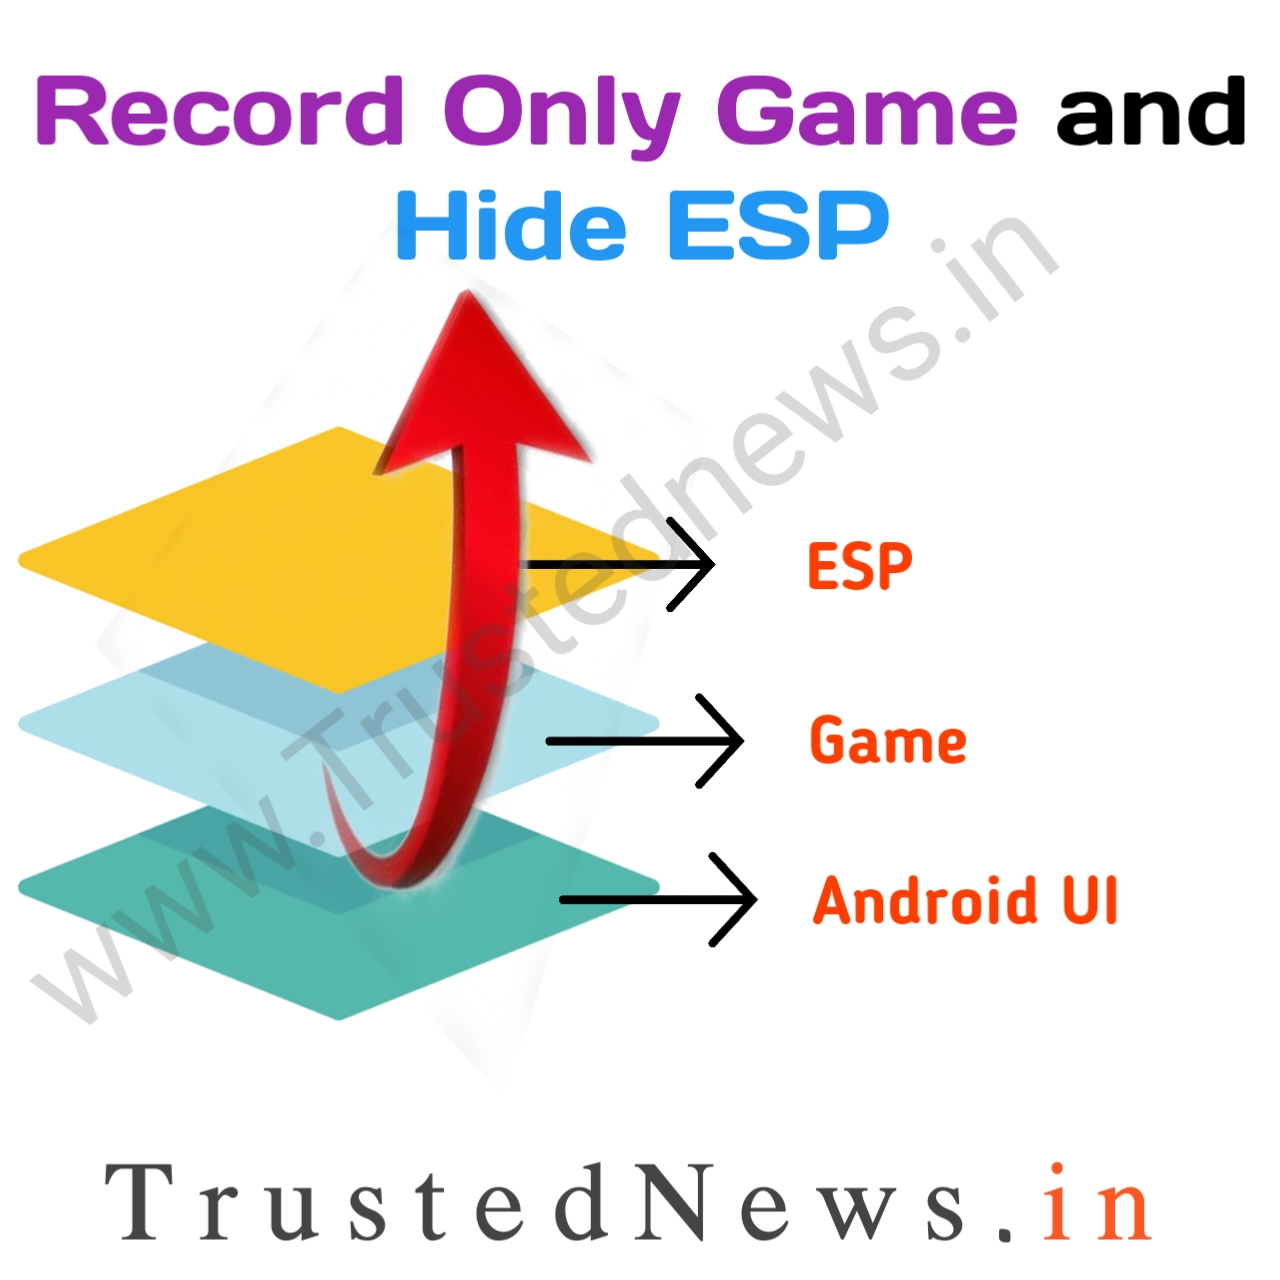 Hide esp from screen recording while game playing